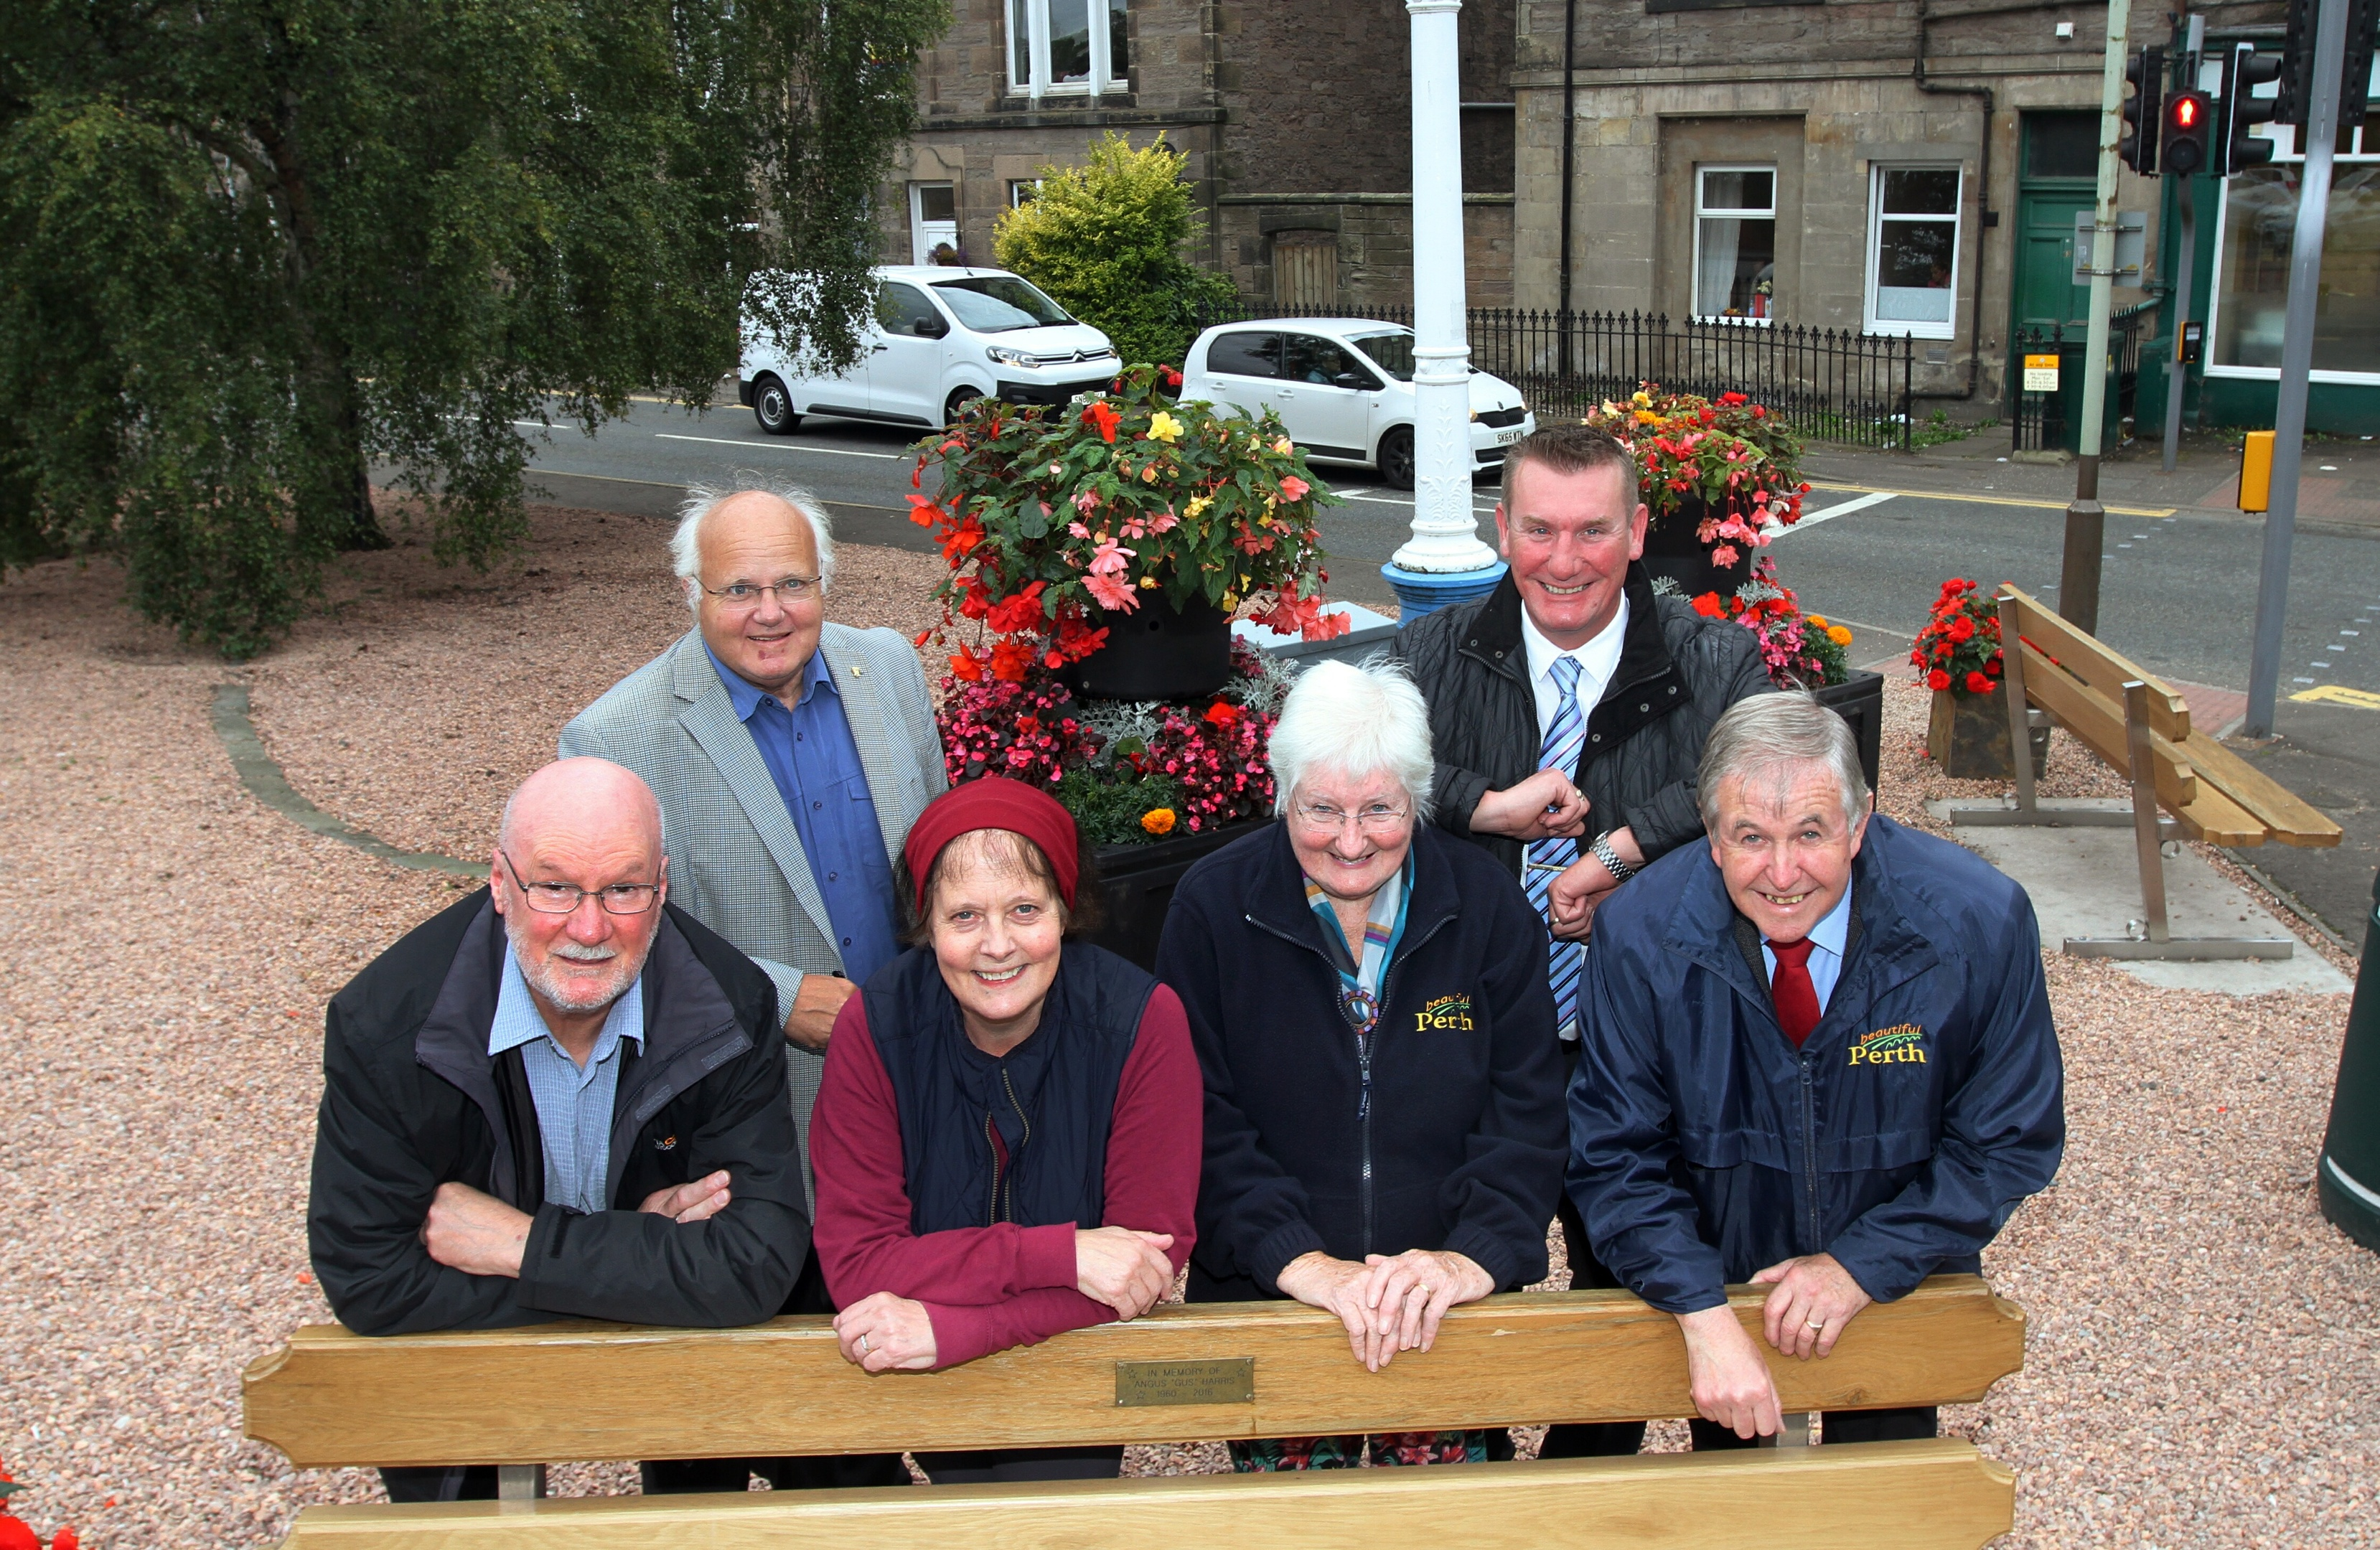 (back) Cllr Bob Brand & Chic Duggan of the Abbottsford, (front) Cllr Michael Jamieson, Monica Straughan and , Barbara McDonald, and John Summers of Beautiful Perth